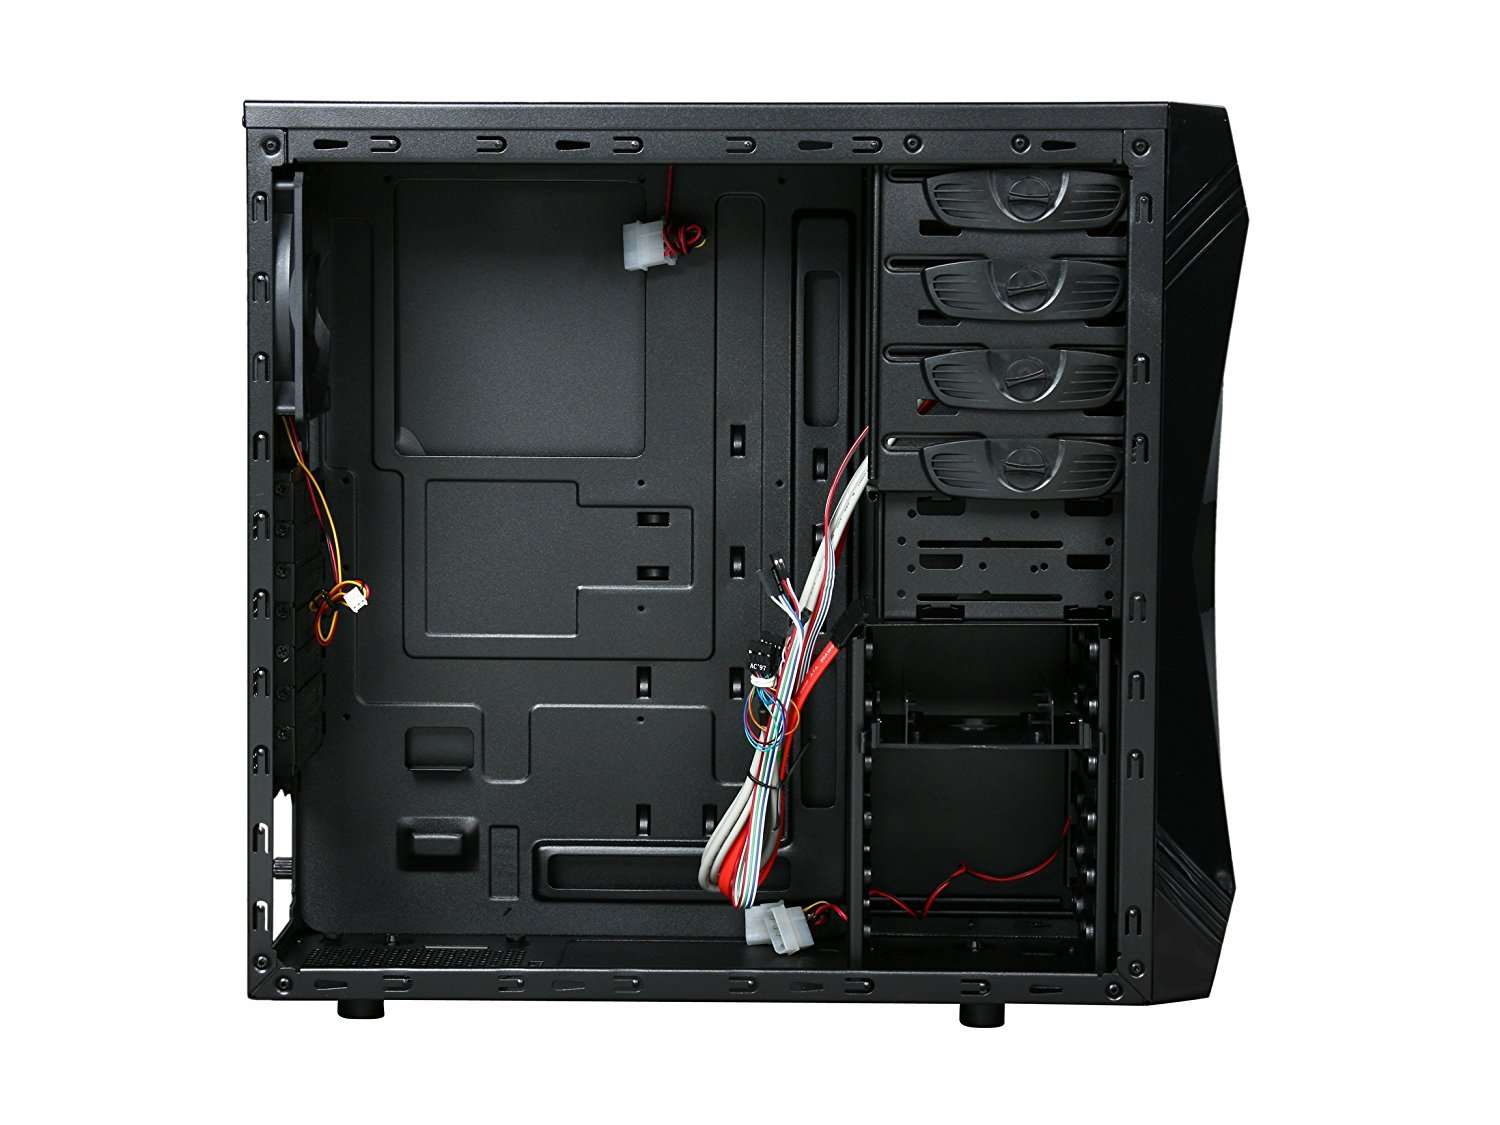 ROSEWILL ATX Mid Tower Gaming Computer Case, Gaming Case with Blue LED for Desktop / PC and 3 Case Fans Pre-Installed, Front I/O Access Ports  (CHALLENGER) by Rosewill (Image #6)